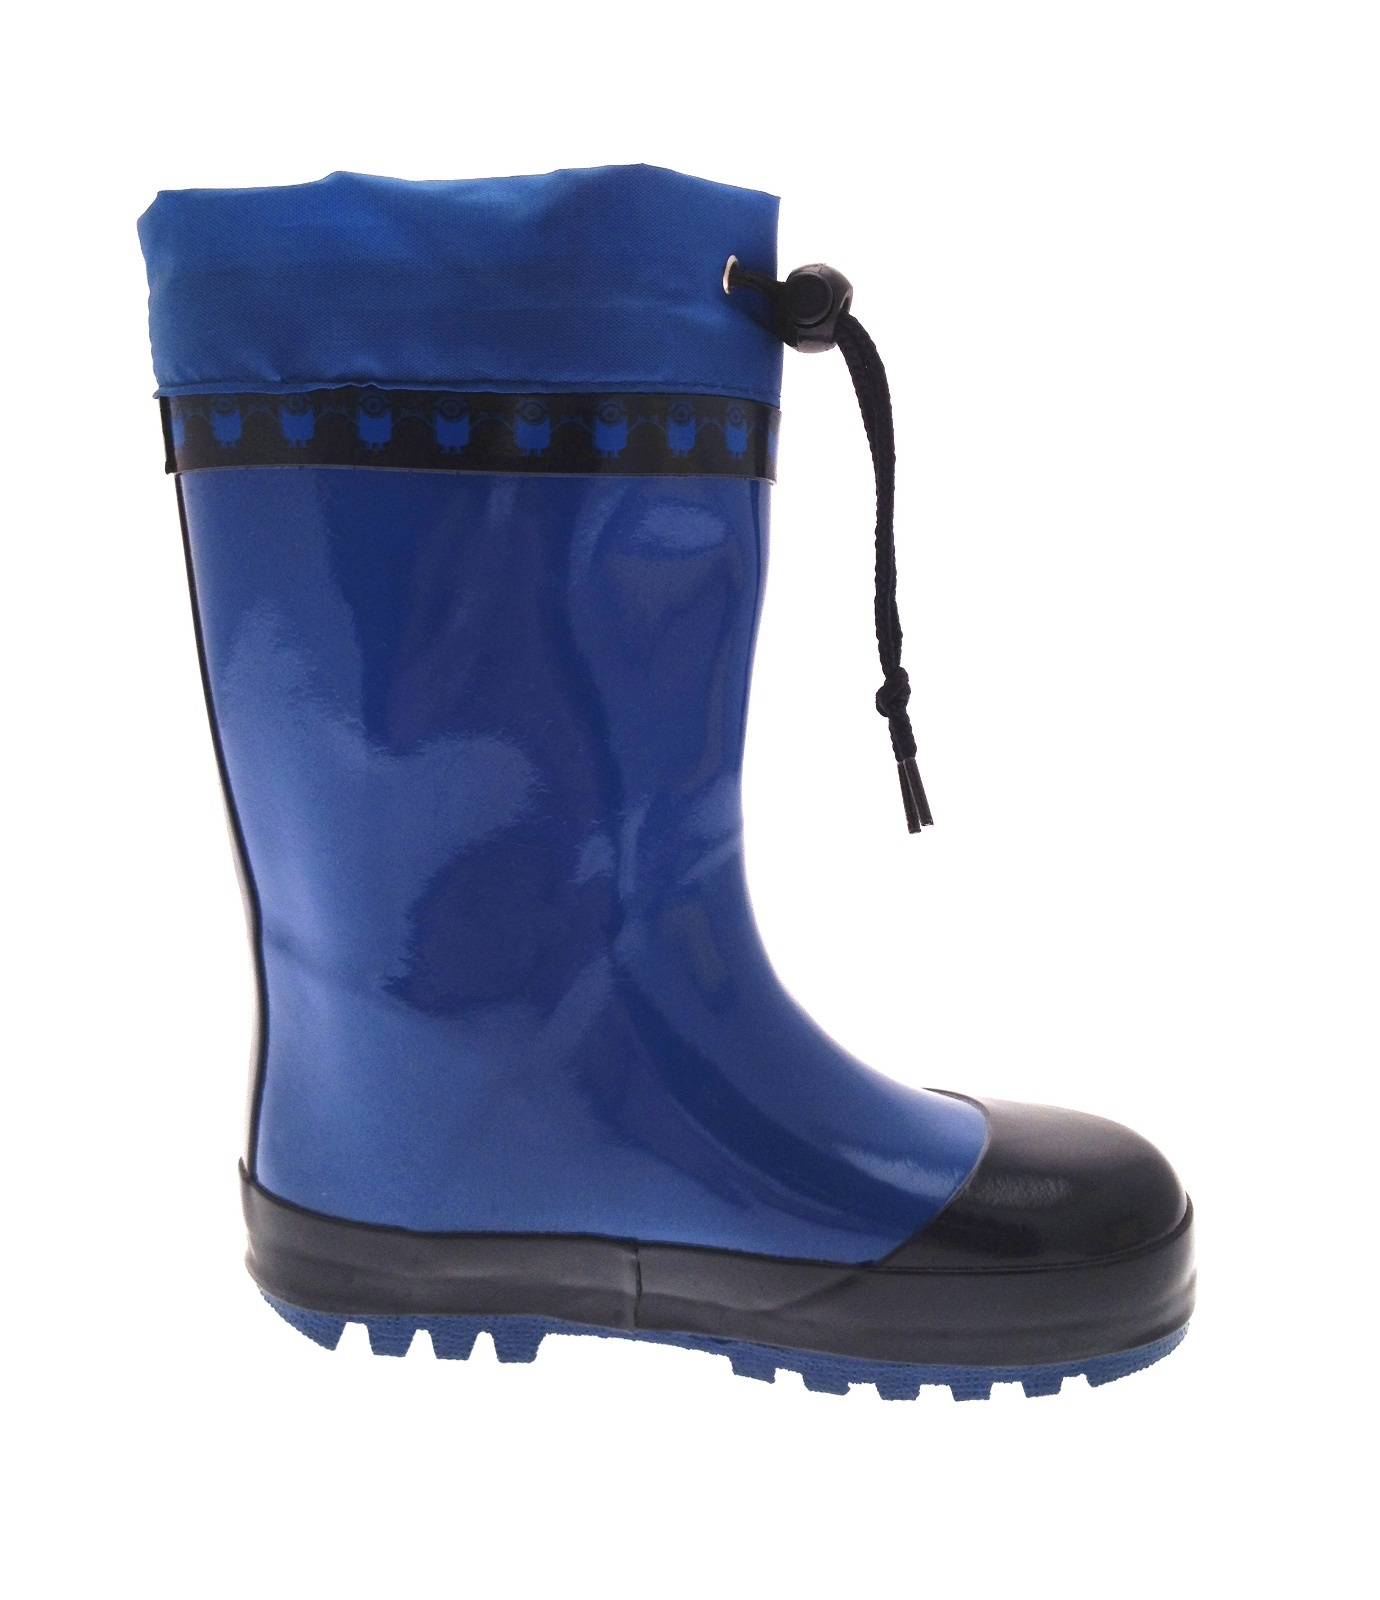 Save boys hunter wellies to get e-mail alerts and updates on your eBay Feed. + Items in search results New Listing Kids Boys Girls HUNTER Rain Boots Wellies size 13/1 BLACK mid/high calf - VGUC.